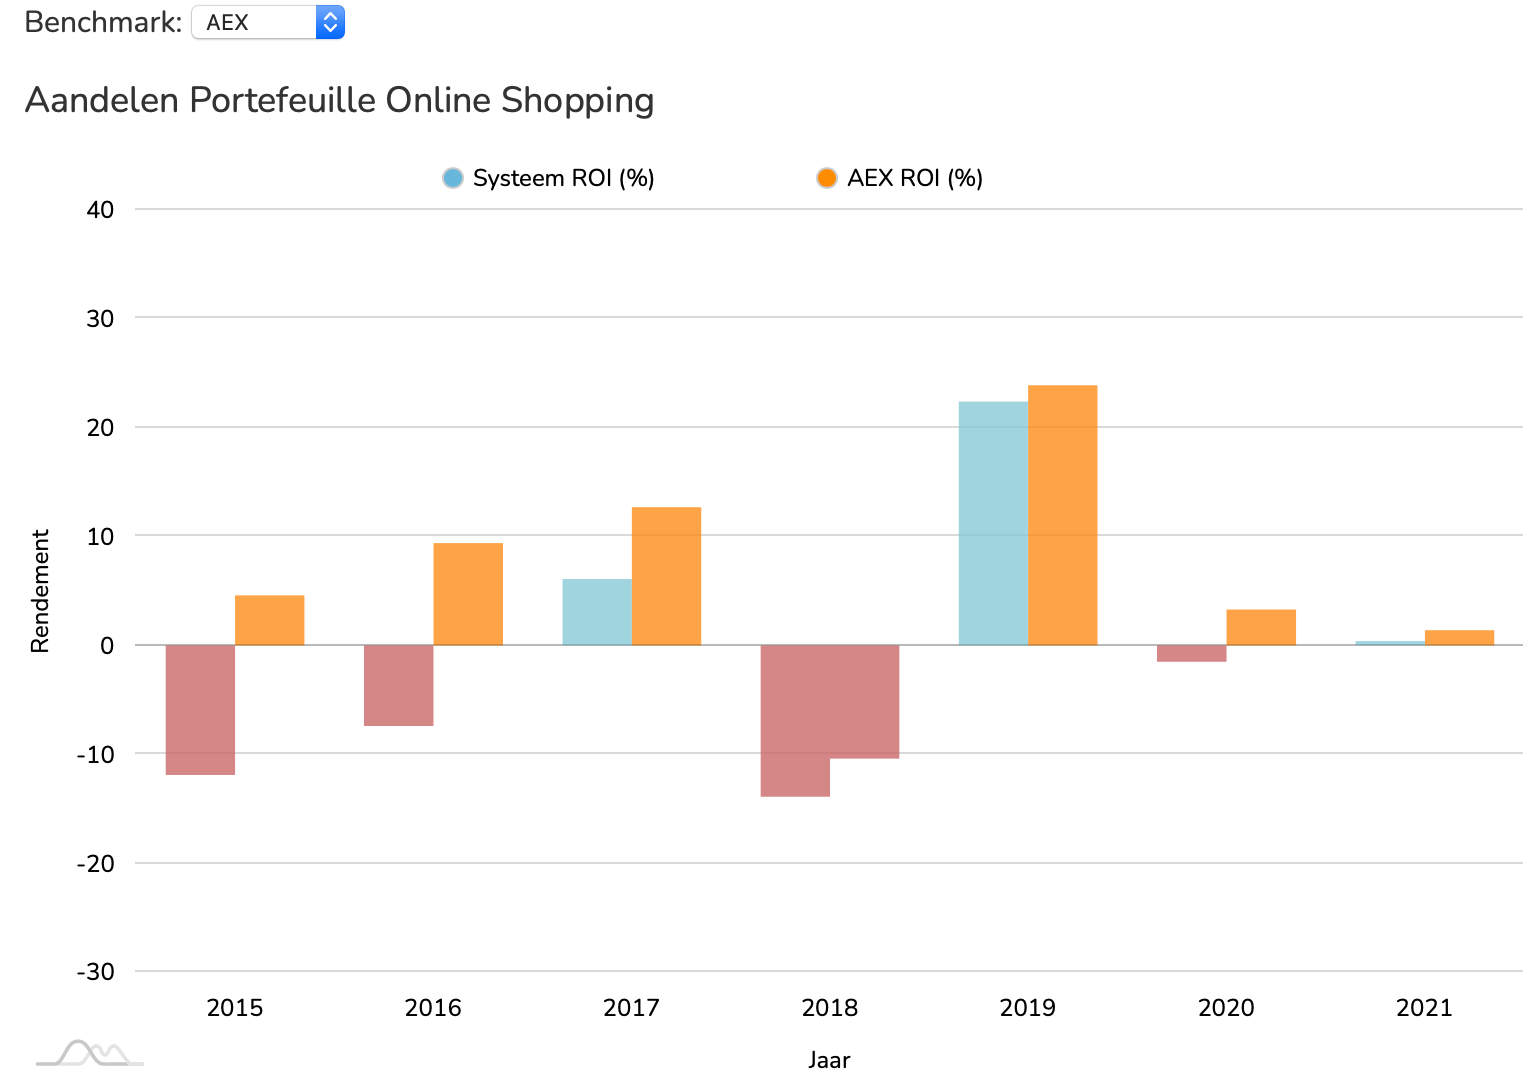 Aandelen Online Shopping ROI vs AEX